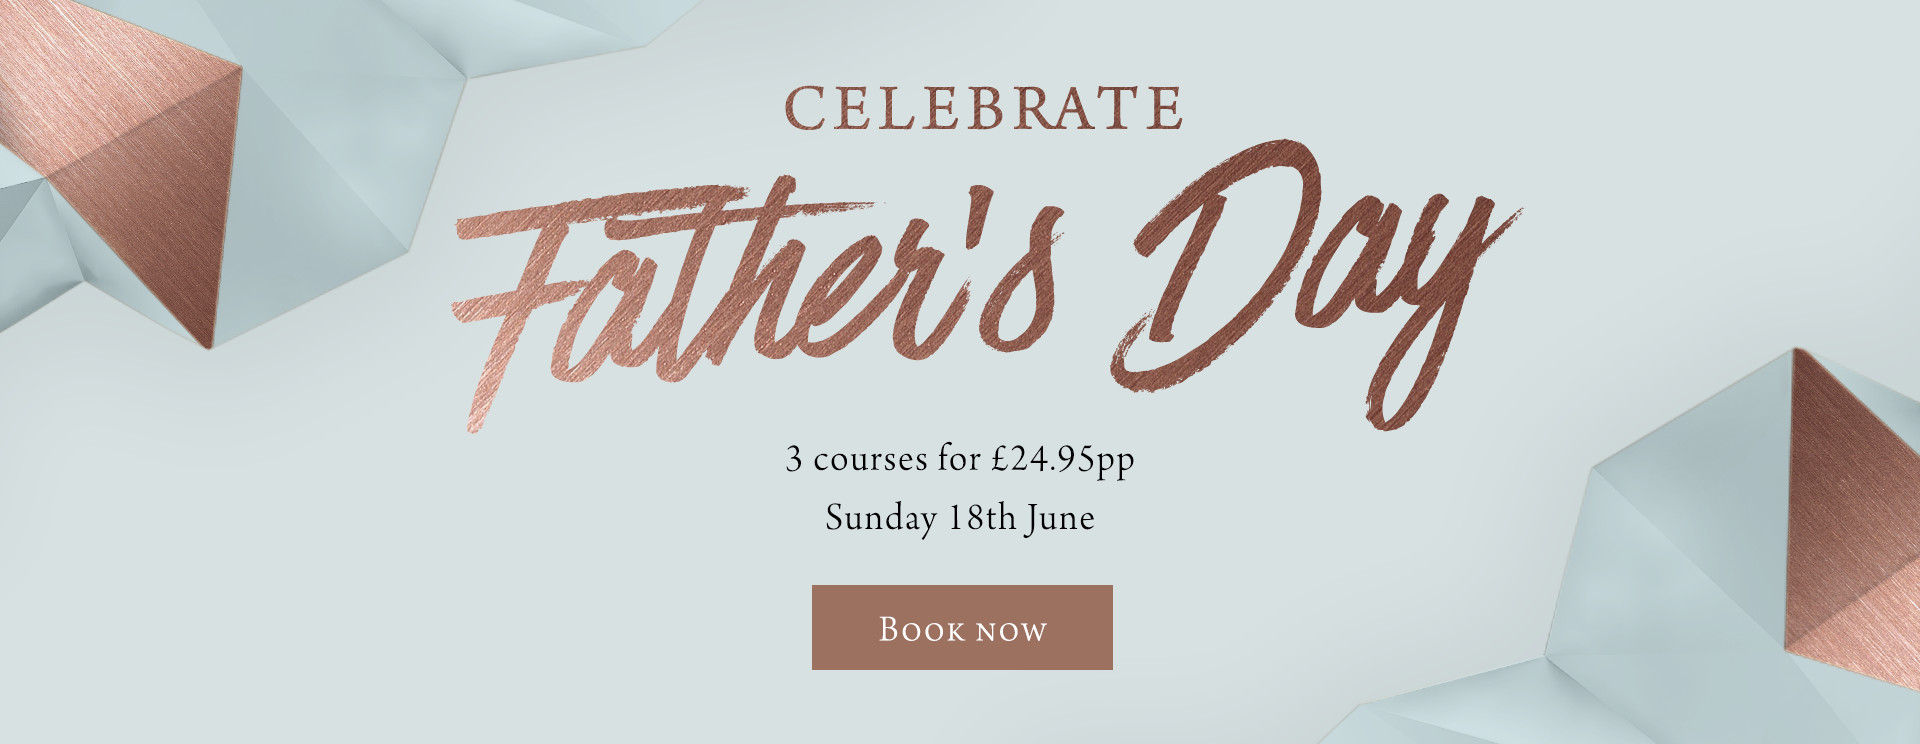 Father's Day at The Red Lion - Book now